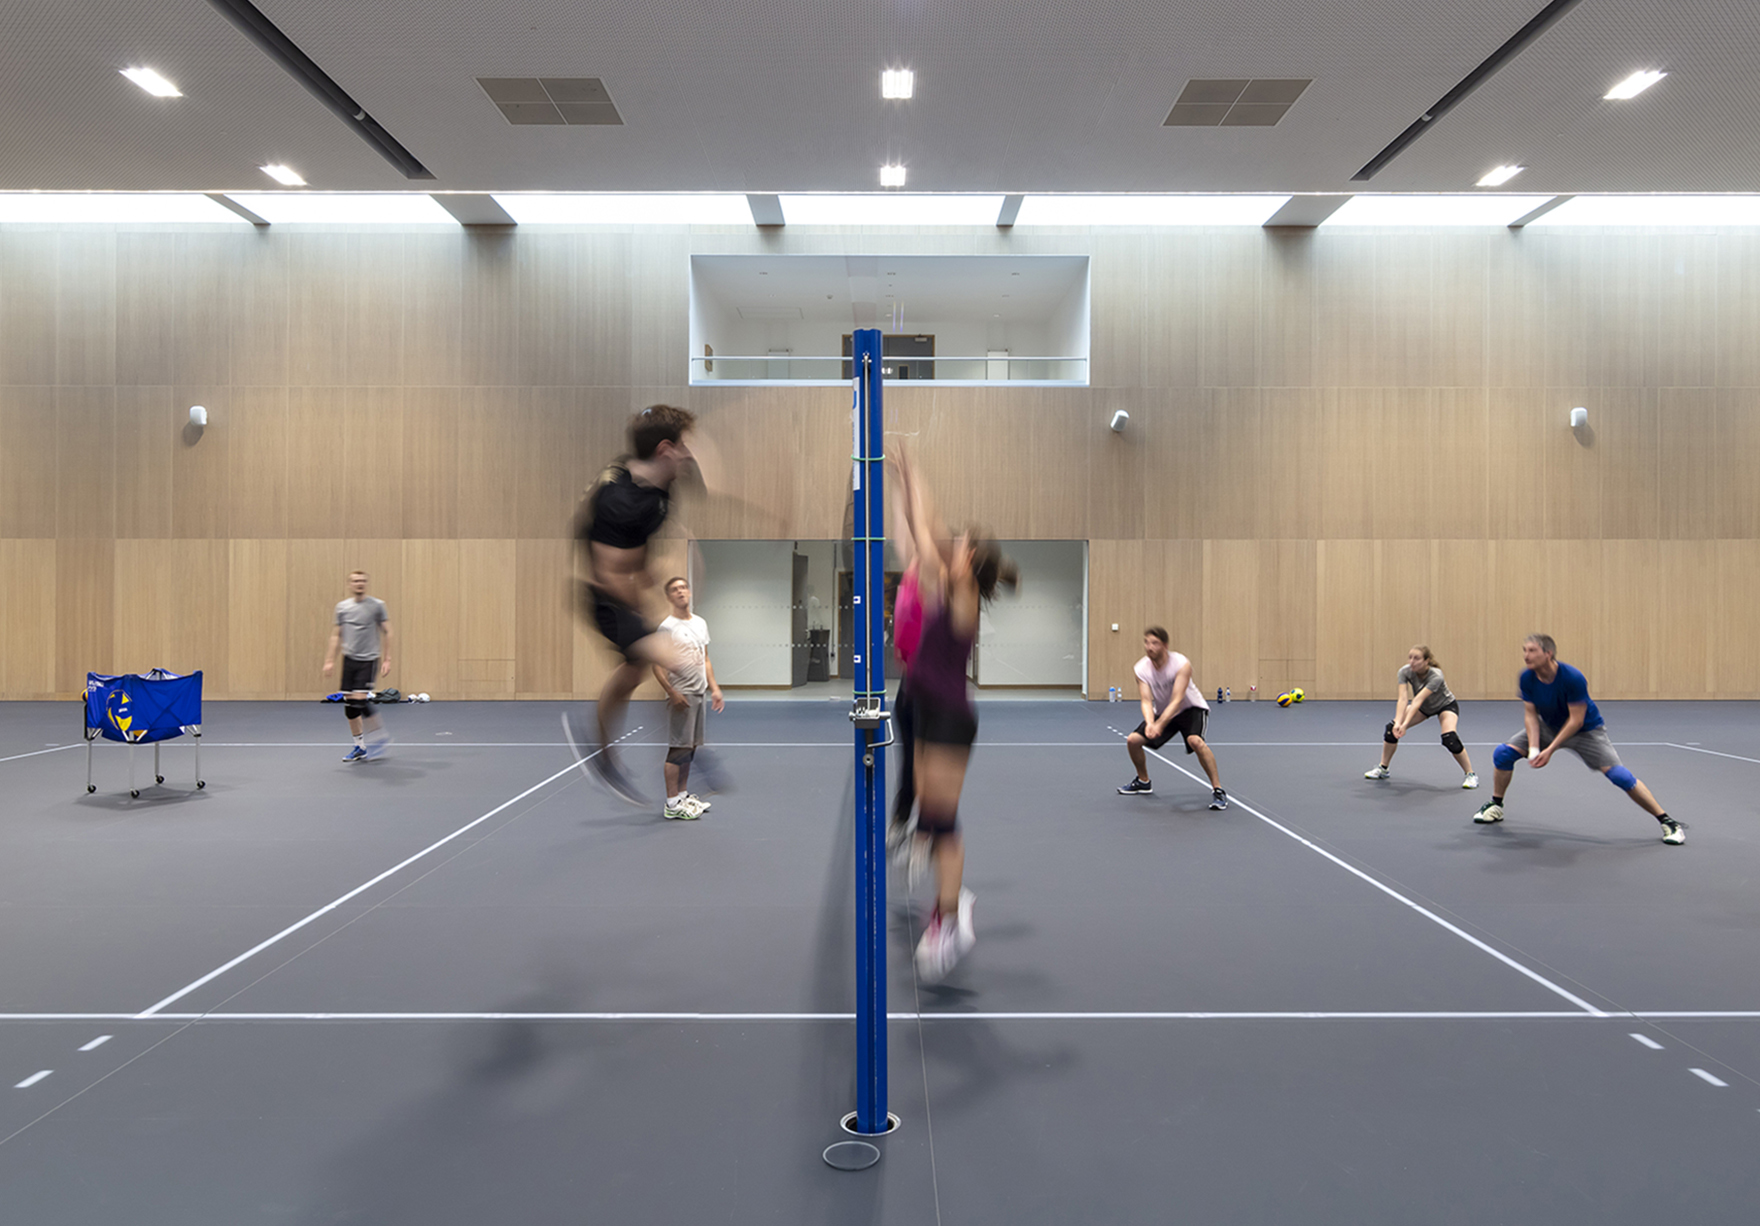 Acer Nethercott Sports Hall Oxford University Sport Led Glass Floor Volleyball Full Length Lh